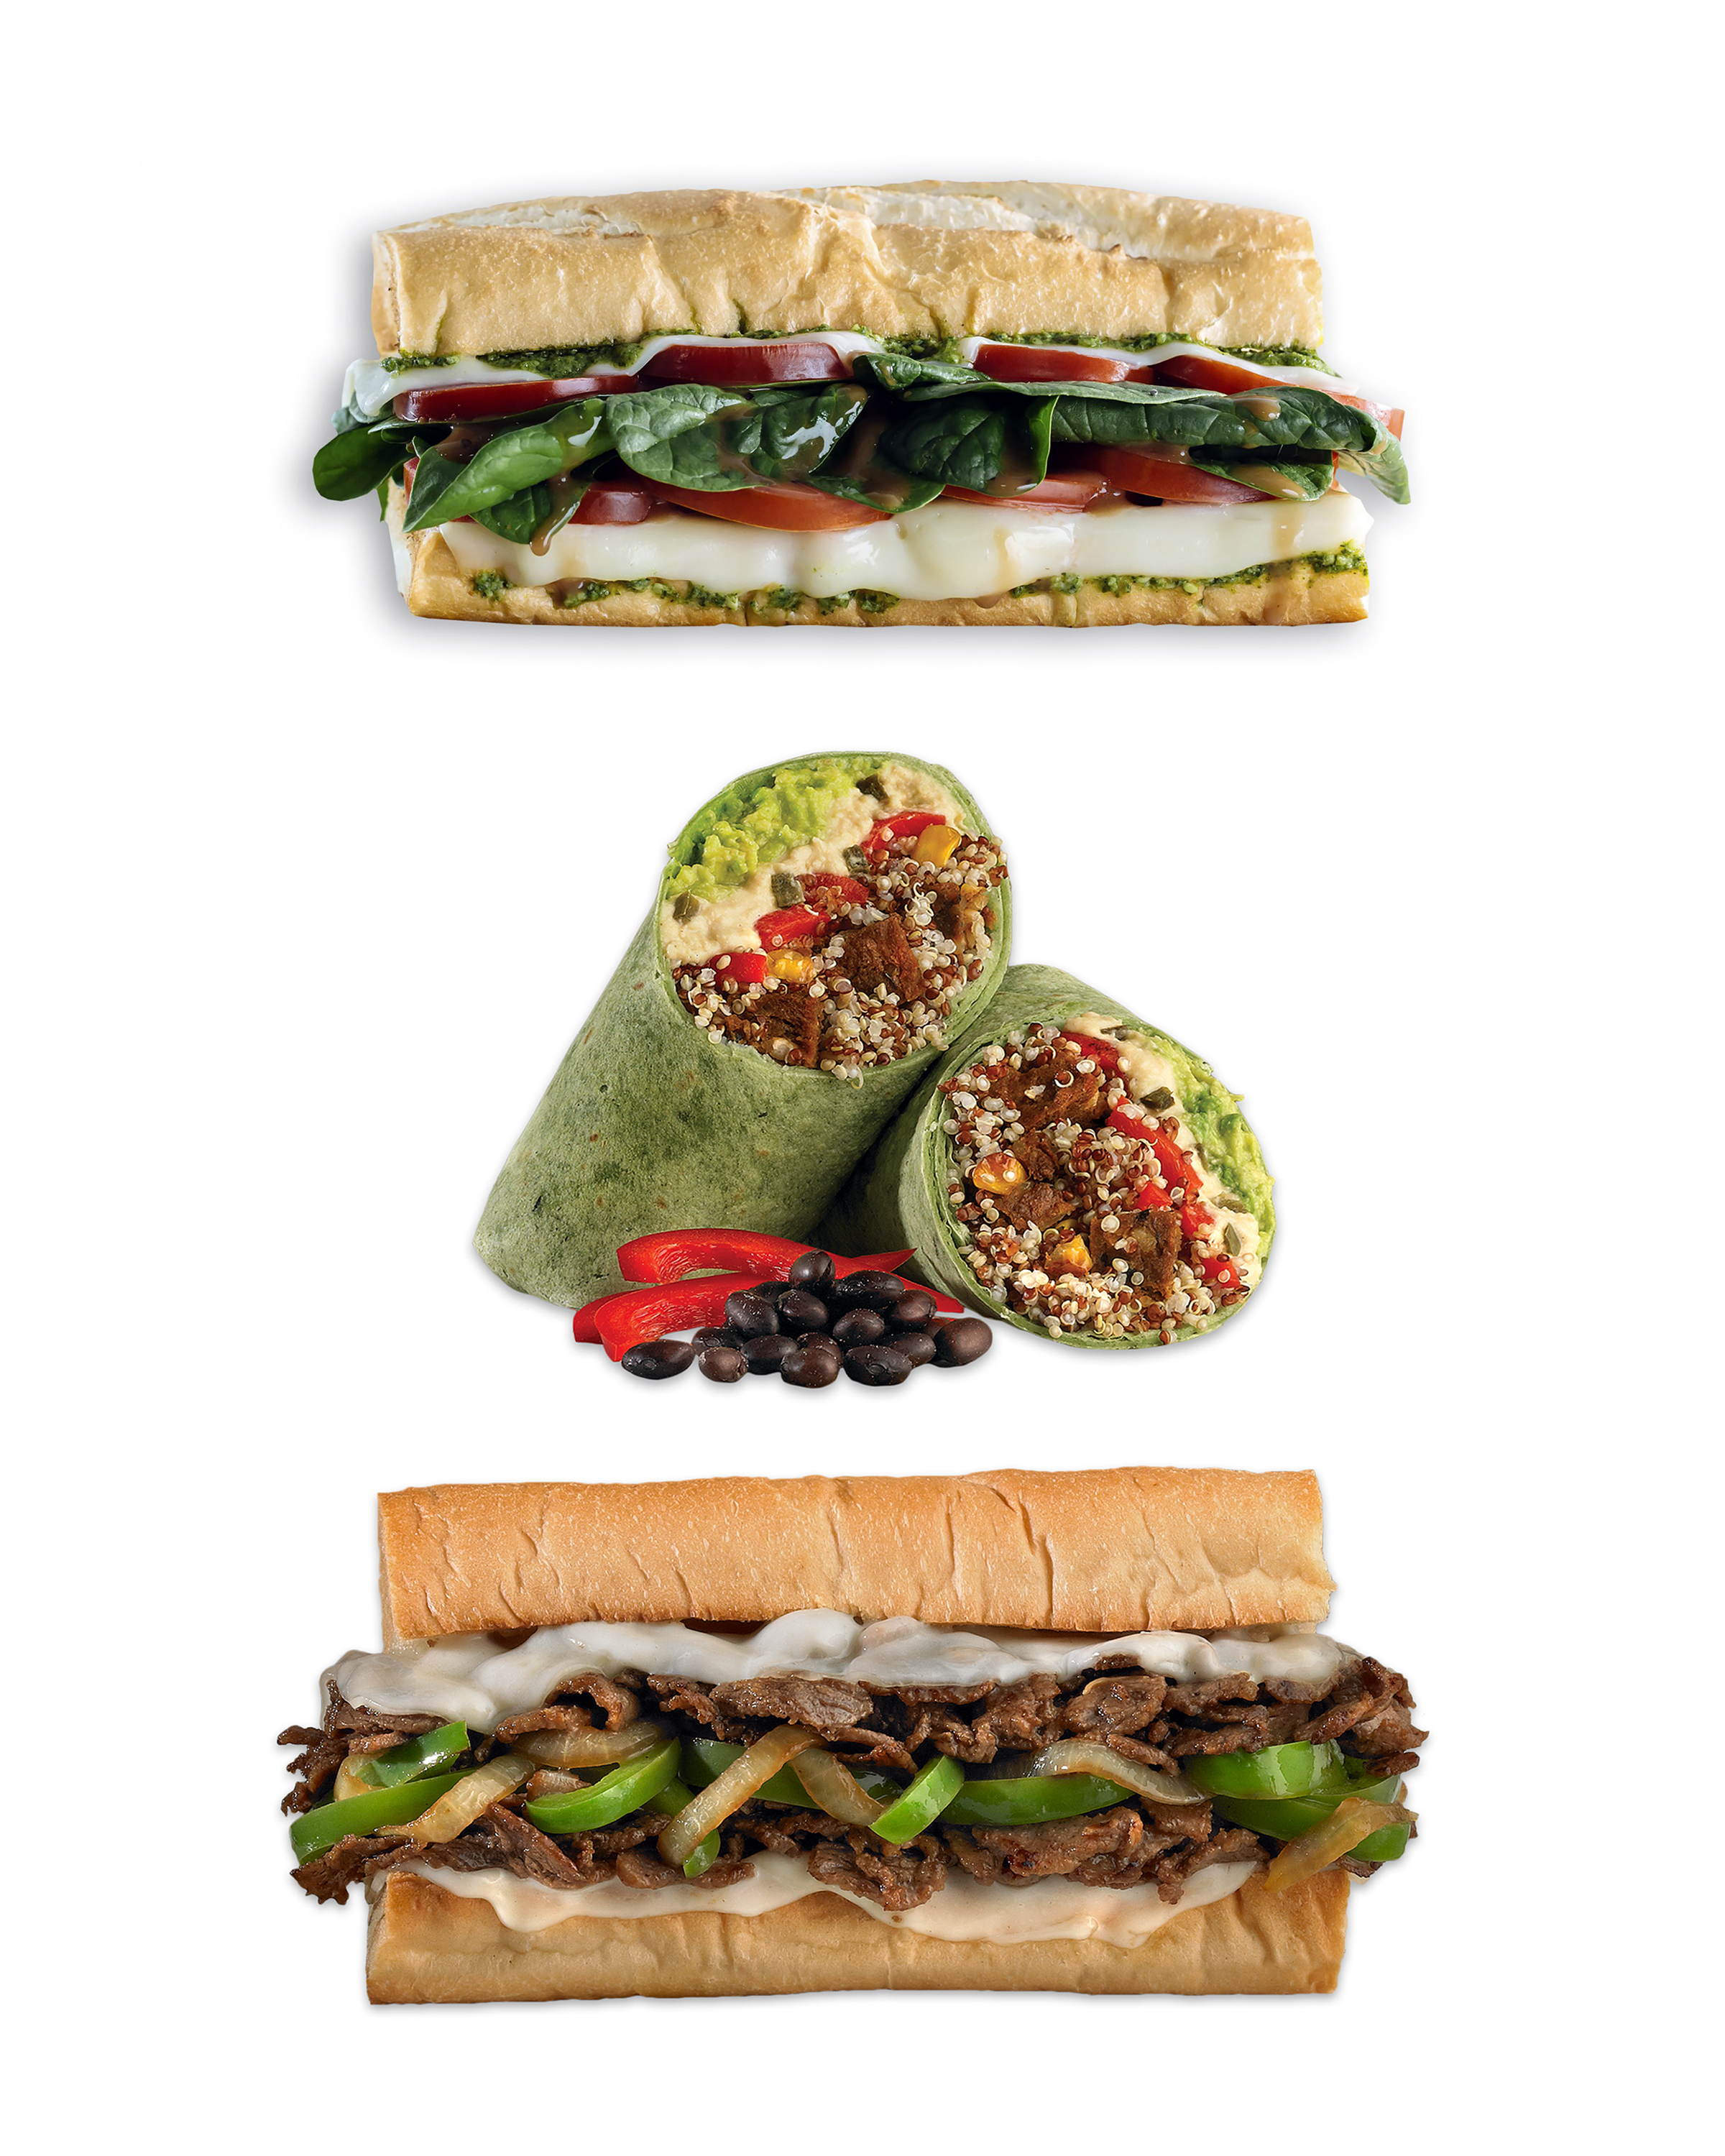 Which WhichWhy? Perfect for when you need something fast. Several vegetarian options. - whichwhich.com930 Park Center Dr.M - Sa 10 AM - 9 PM, Su 11 AM - 8 PM, closed Monday(Photo source whichwhich.com)